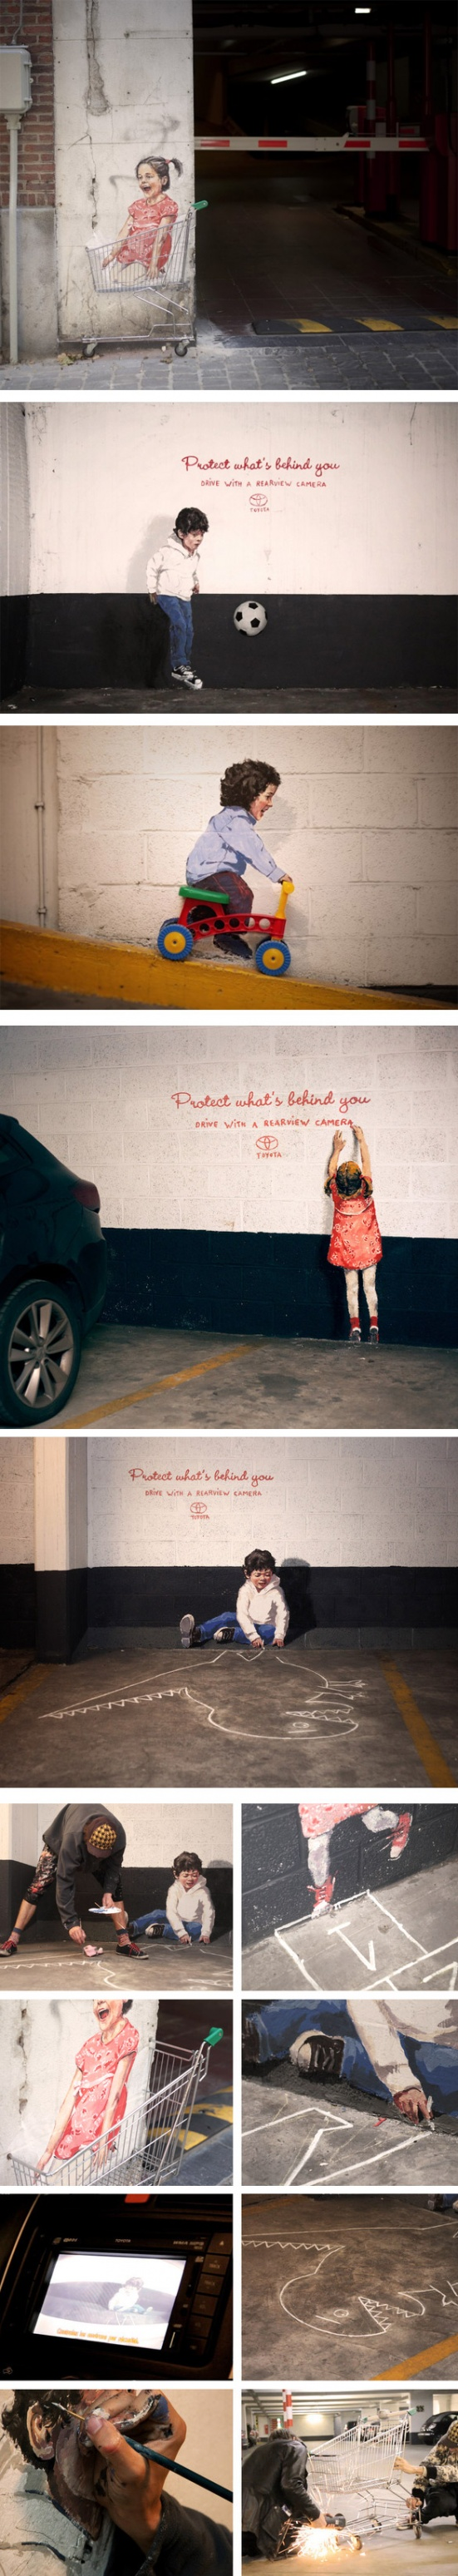 Ernest Zacharevic - Protect what s behind you